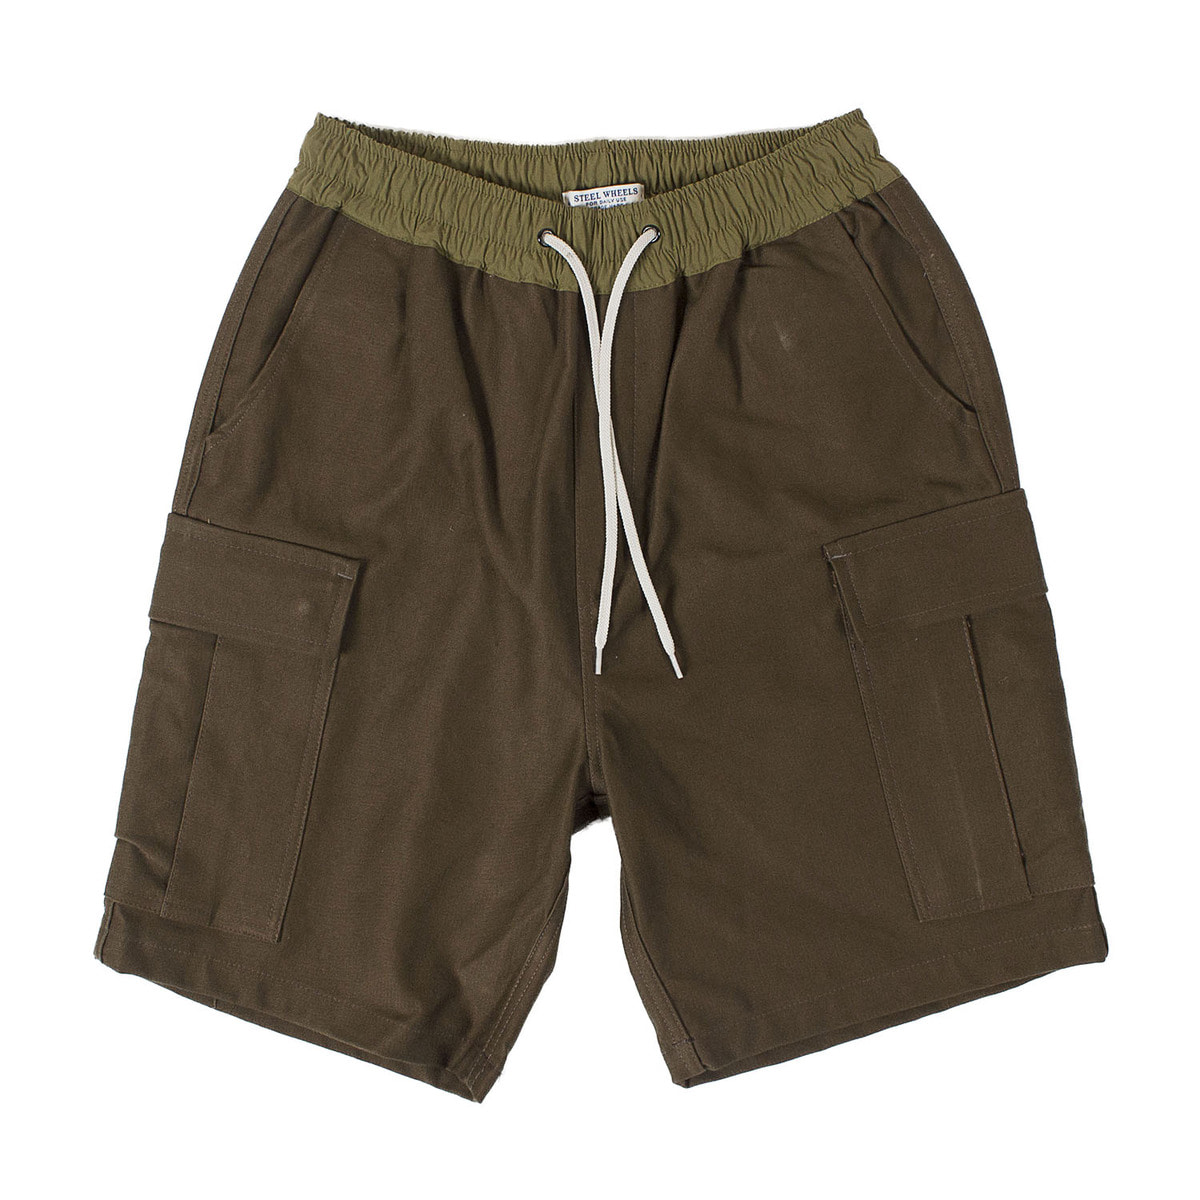 S-65 Cargo Short (Brown)